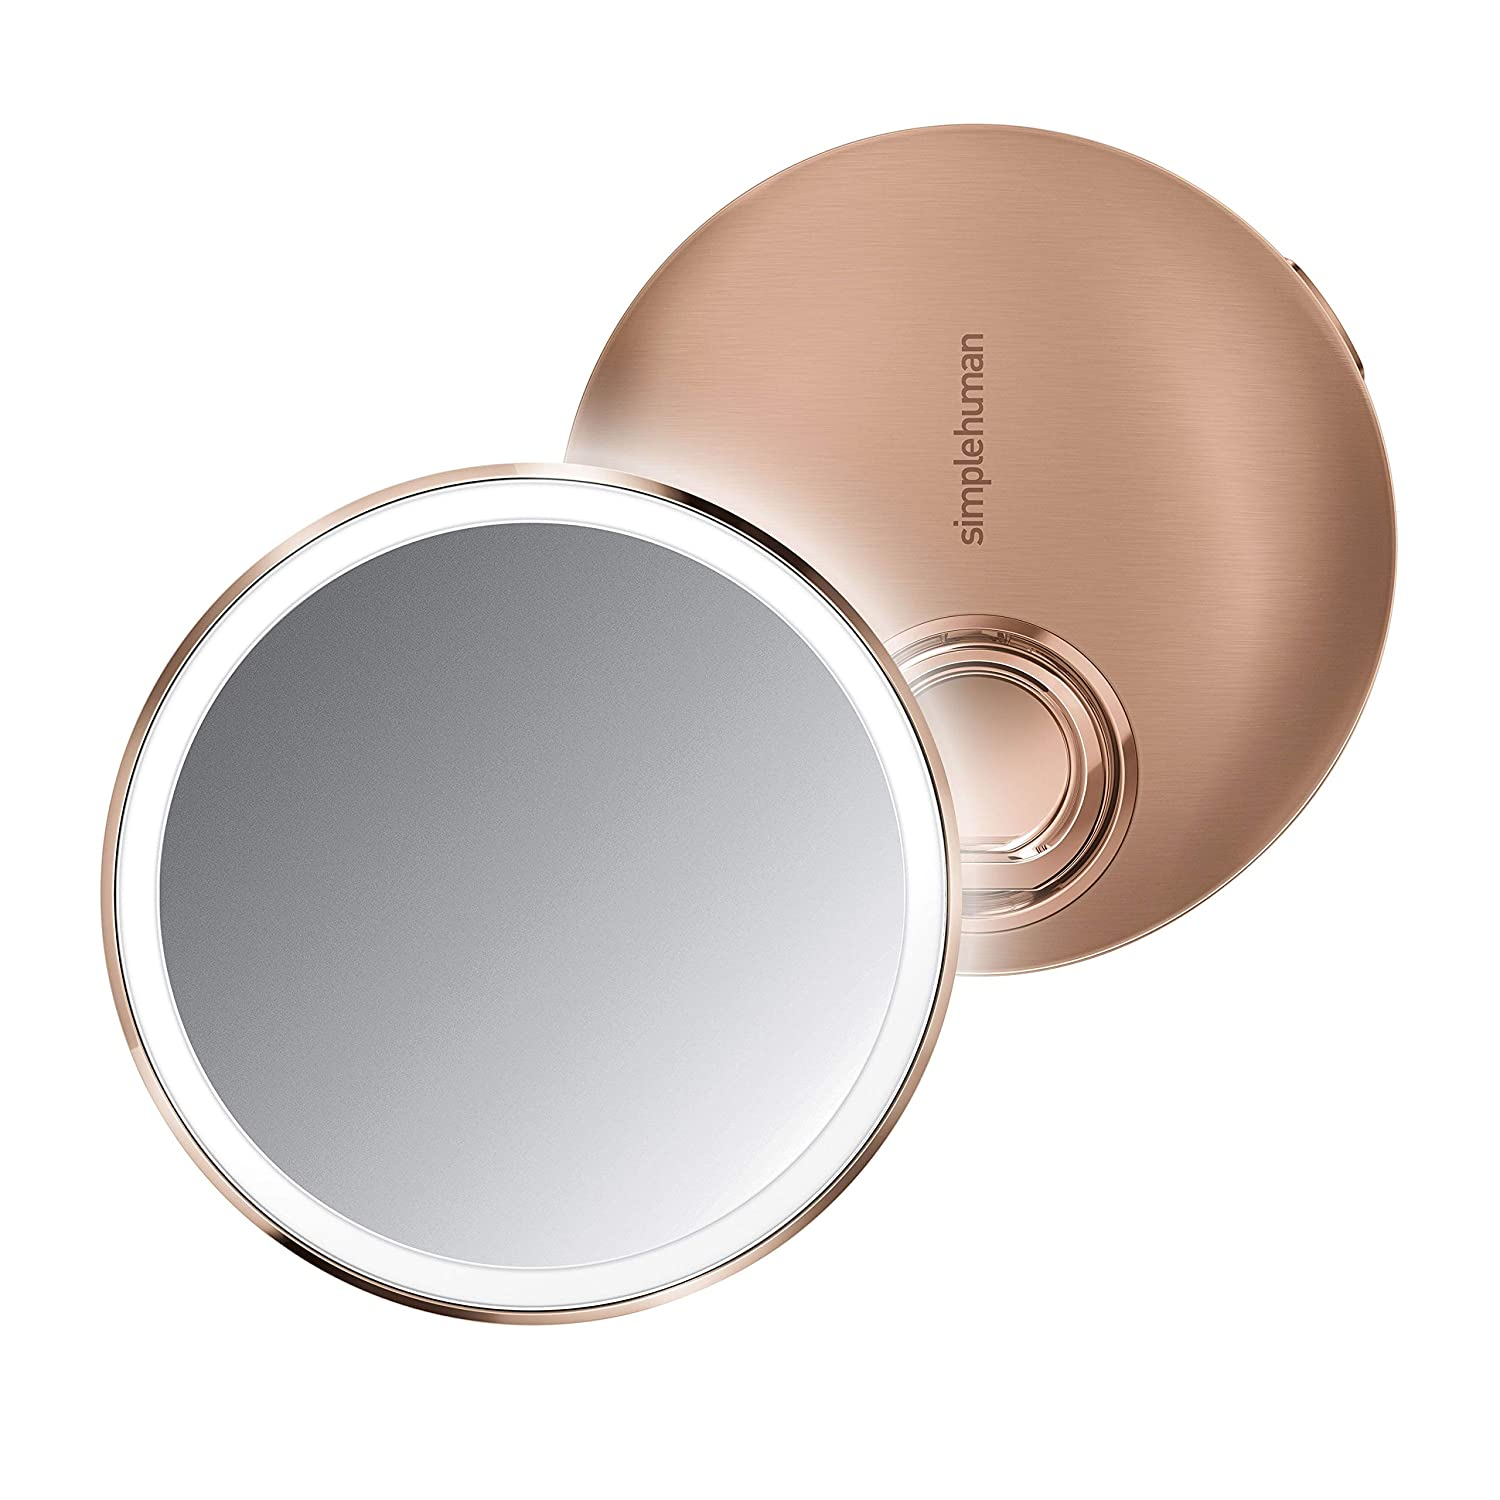 """simplehuman Sensor Mirror Compact 4"""" Round, 3X Magnification, Rose Gold Stainless Steel"""